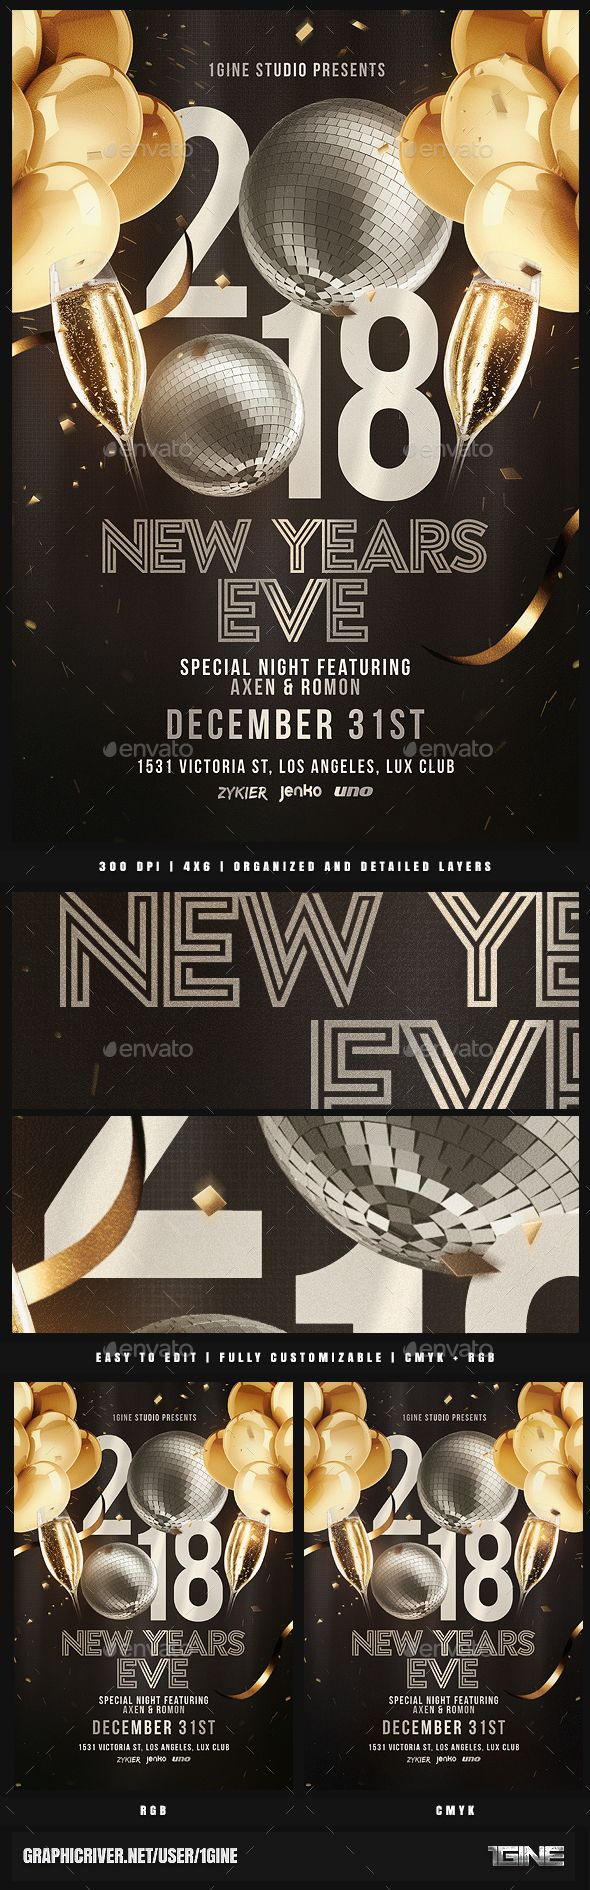 #NYE Party Flyer Template v2 - Clubs & Parties #Events